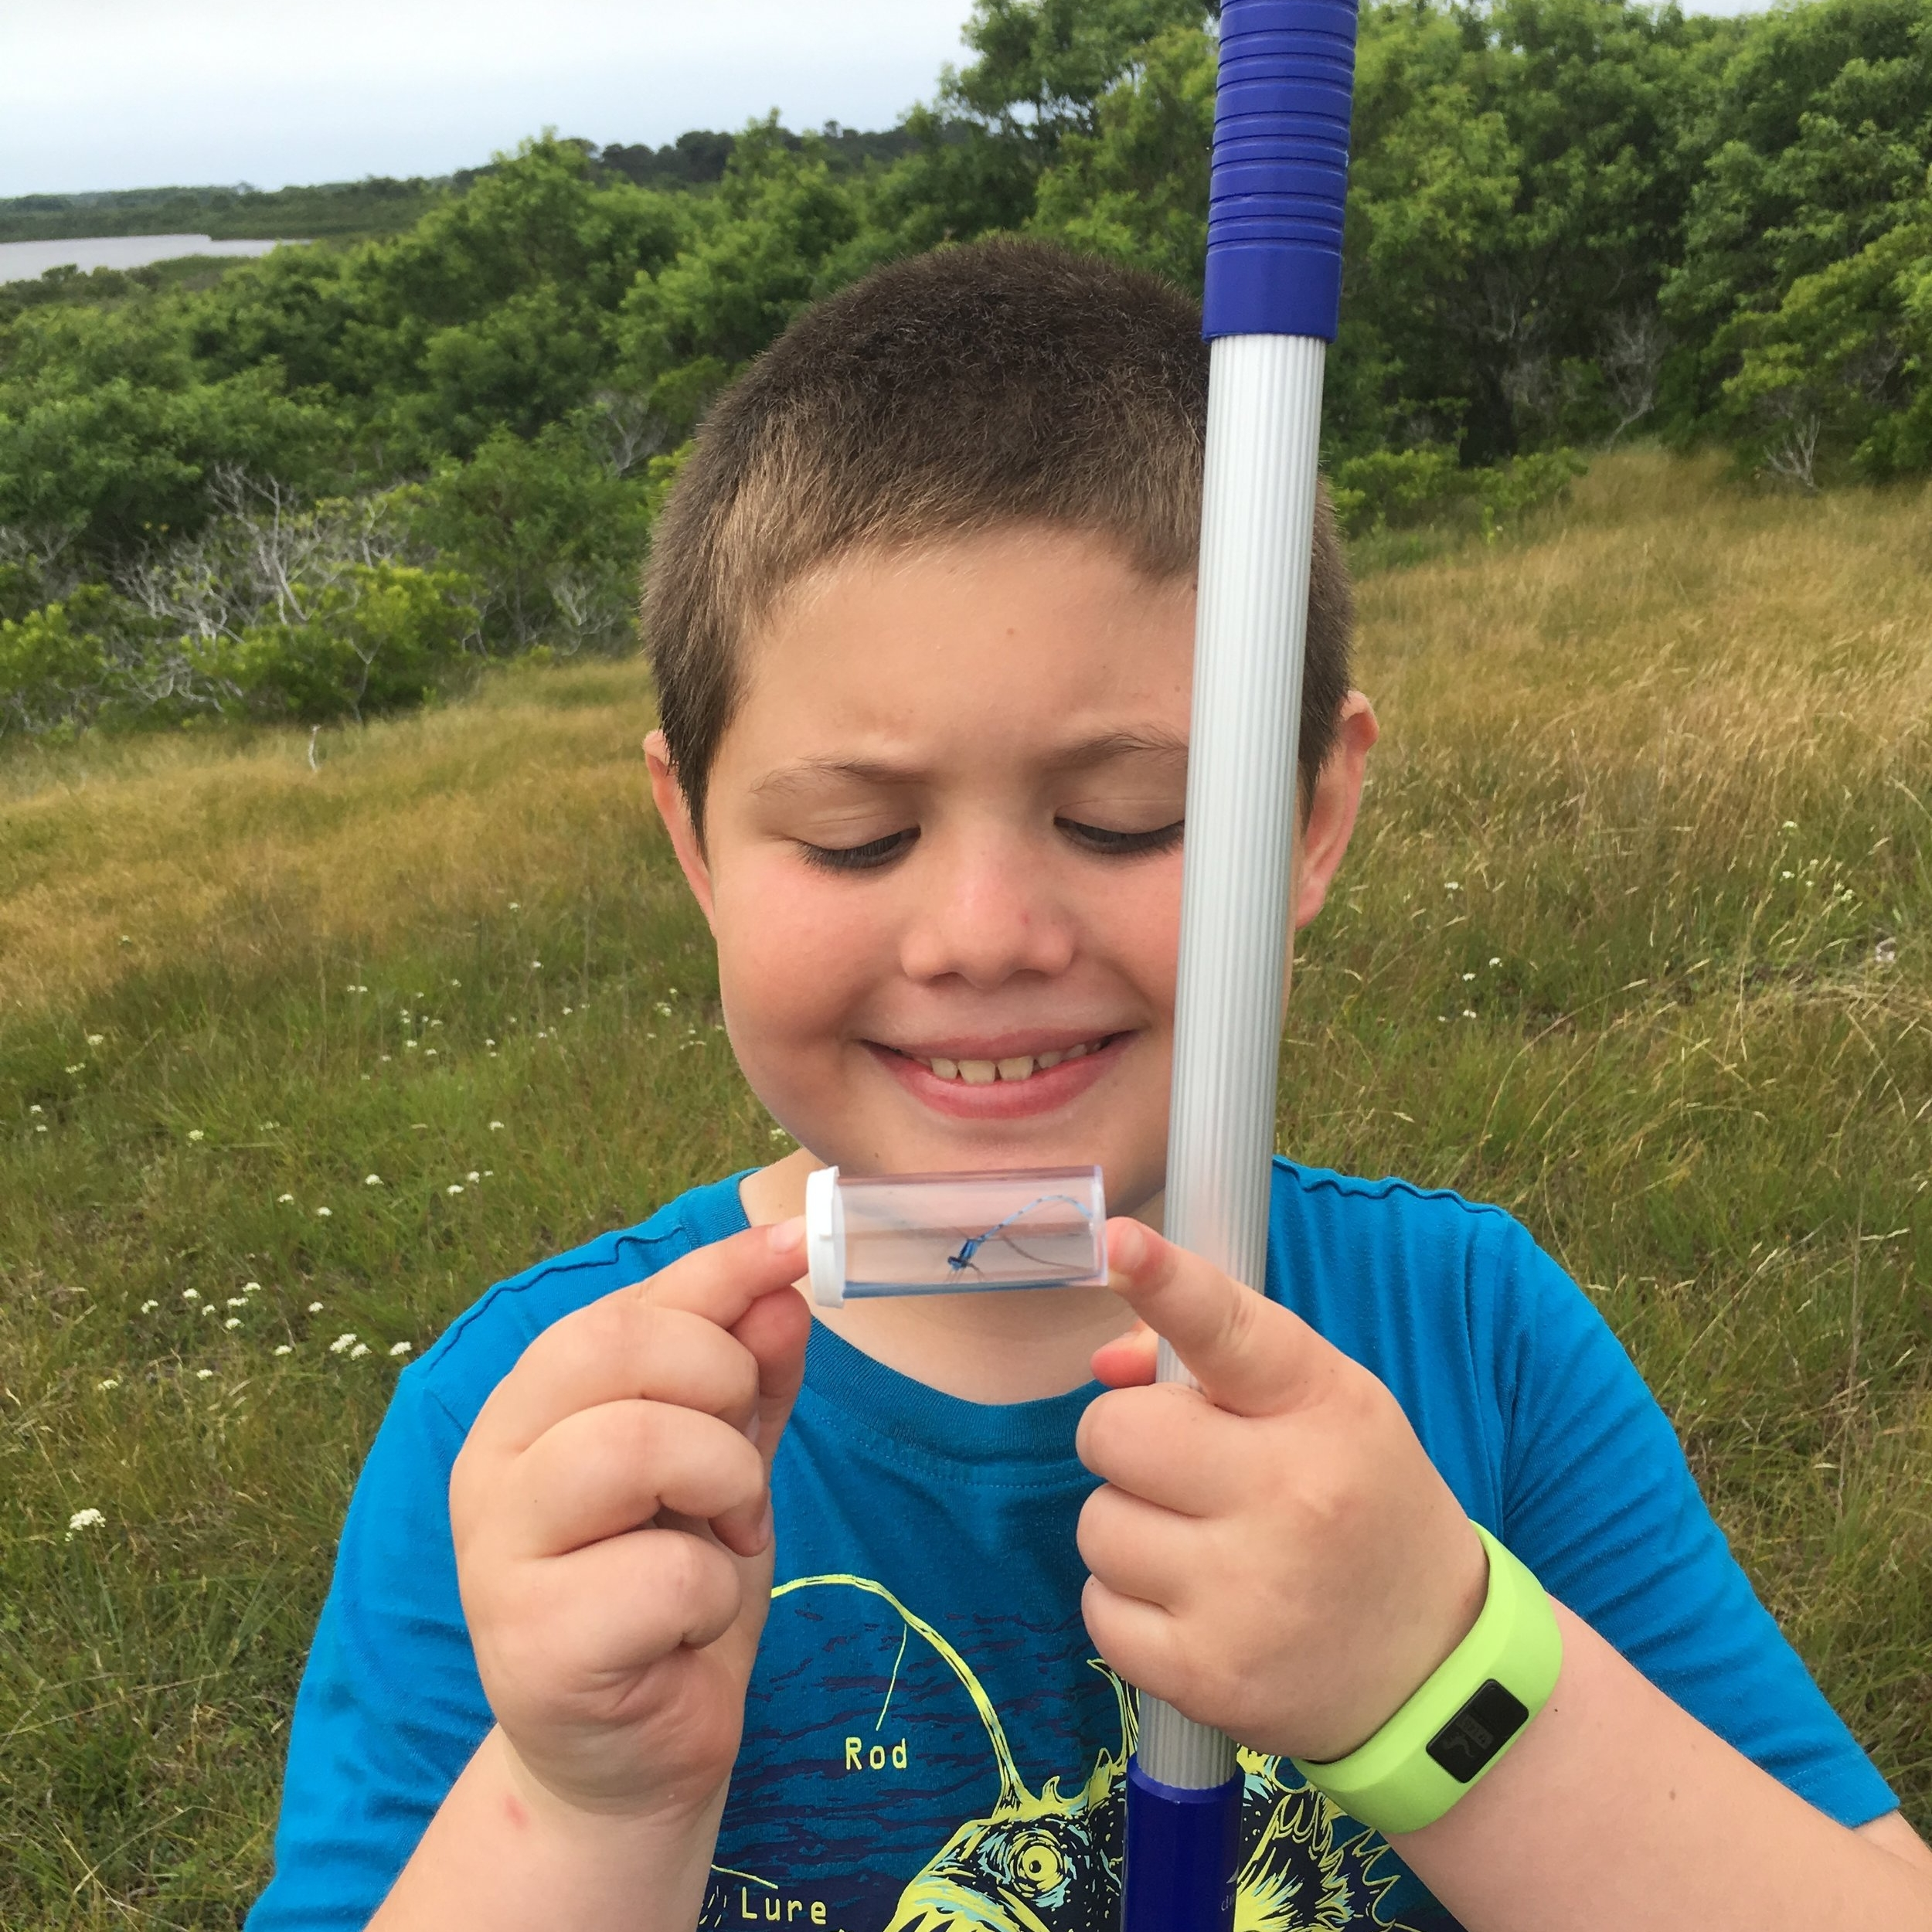 Kids in Nature Workshops - We offer fun classes for ages 6 to 10 focusing on a wide variety of science and nature topics! See our brochure and class descriptions for more information!Class Descriptions and More Information →